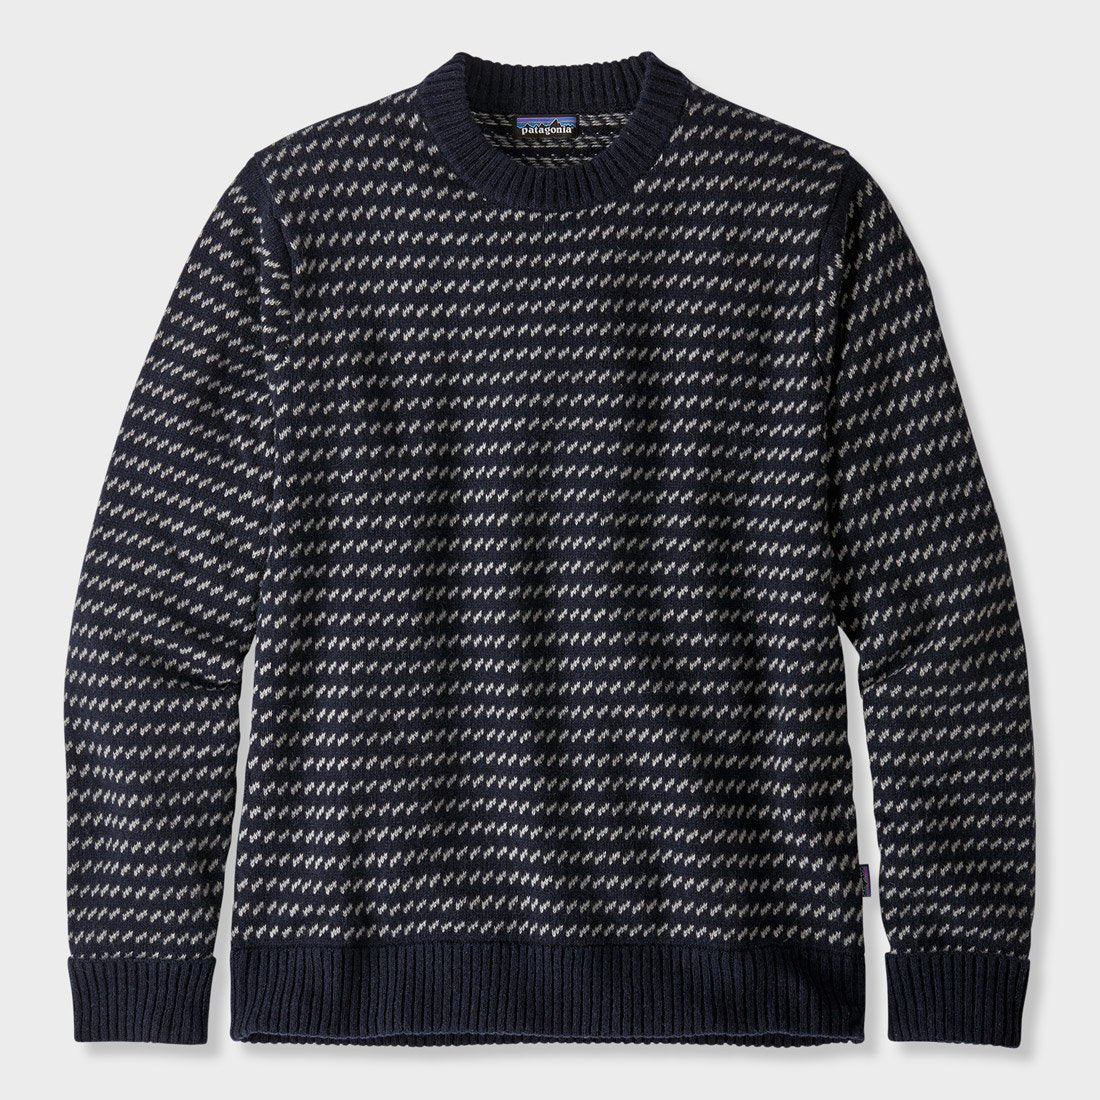 Patagonia Recycled Wool Sweater Classic Navy